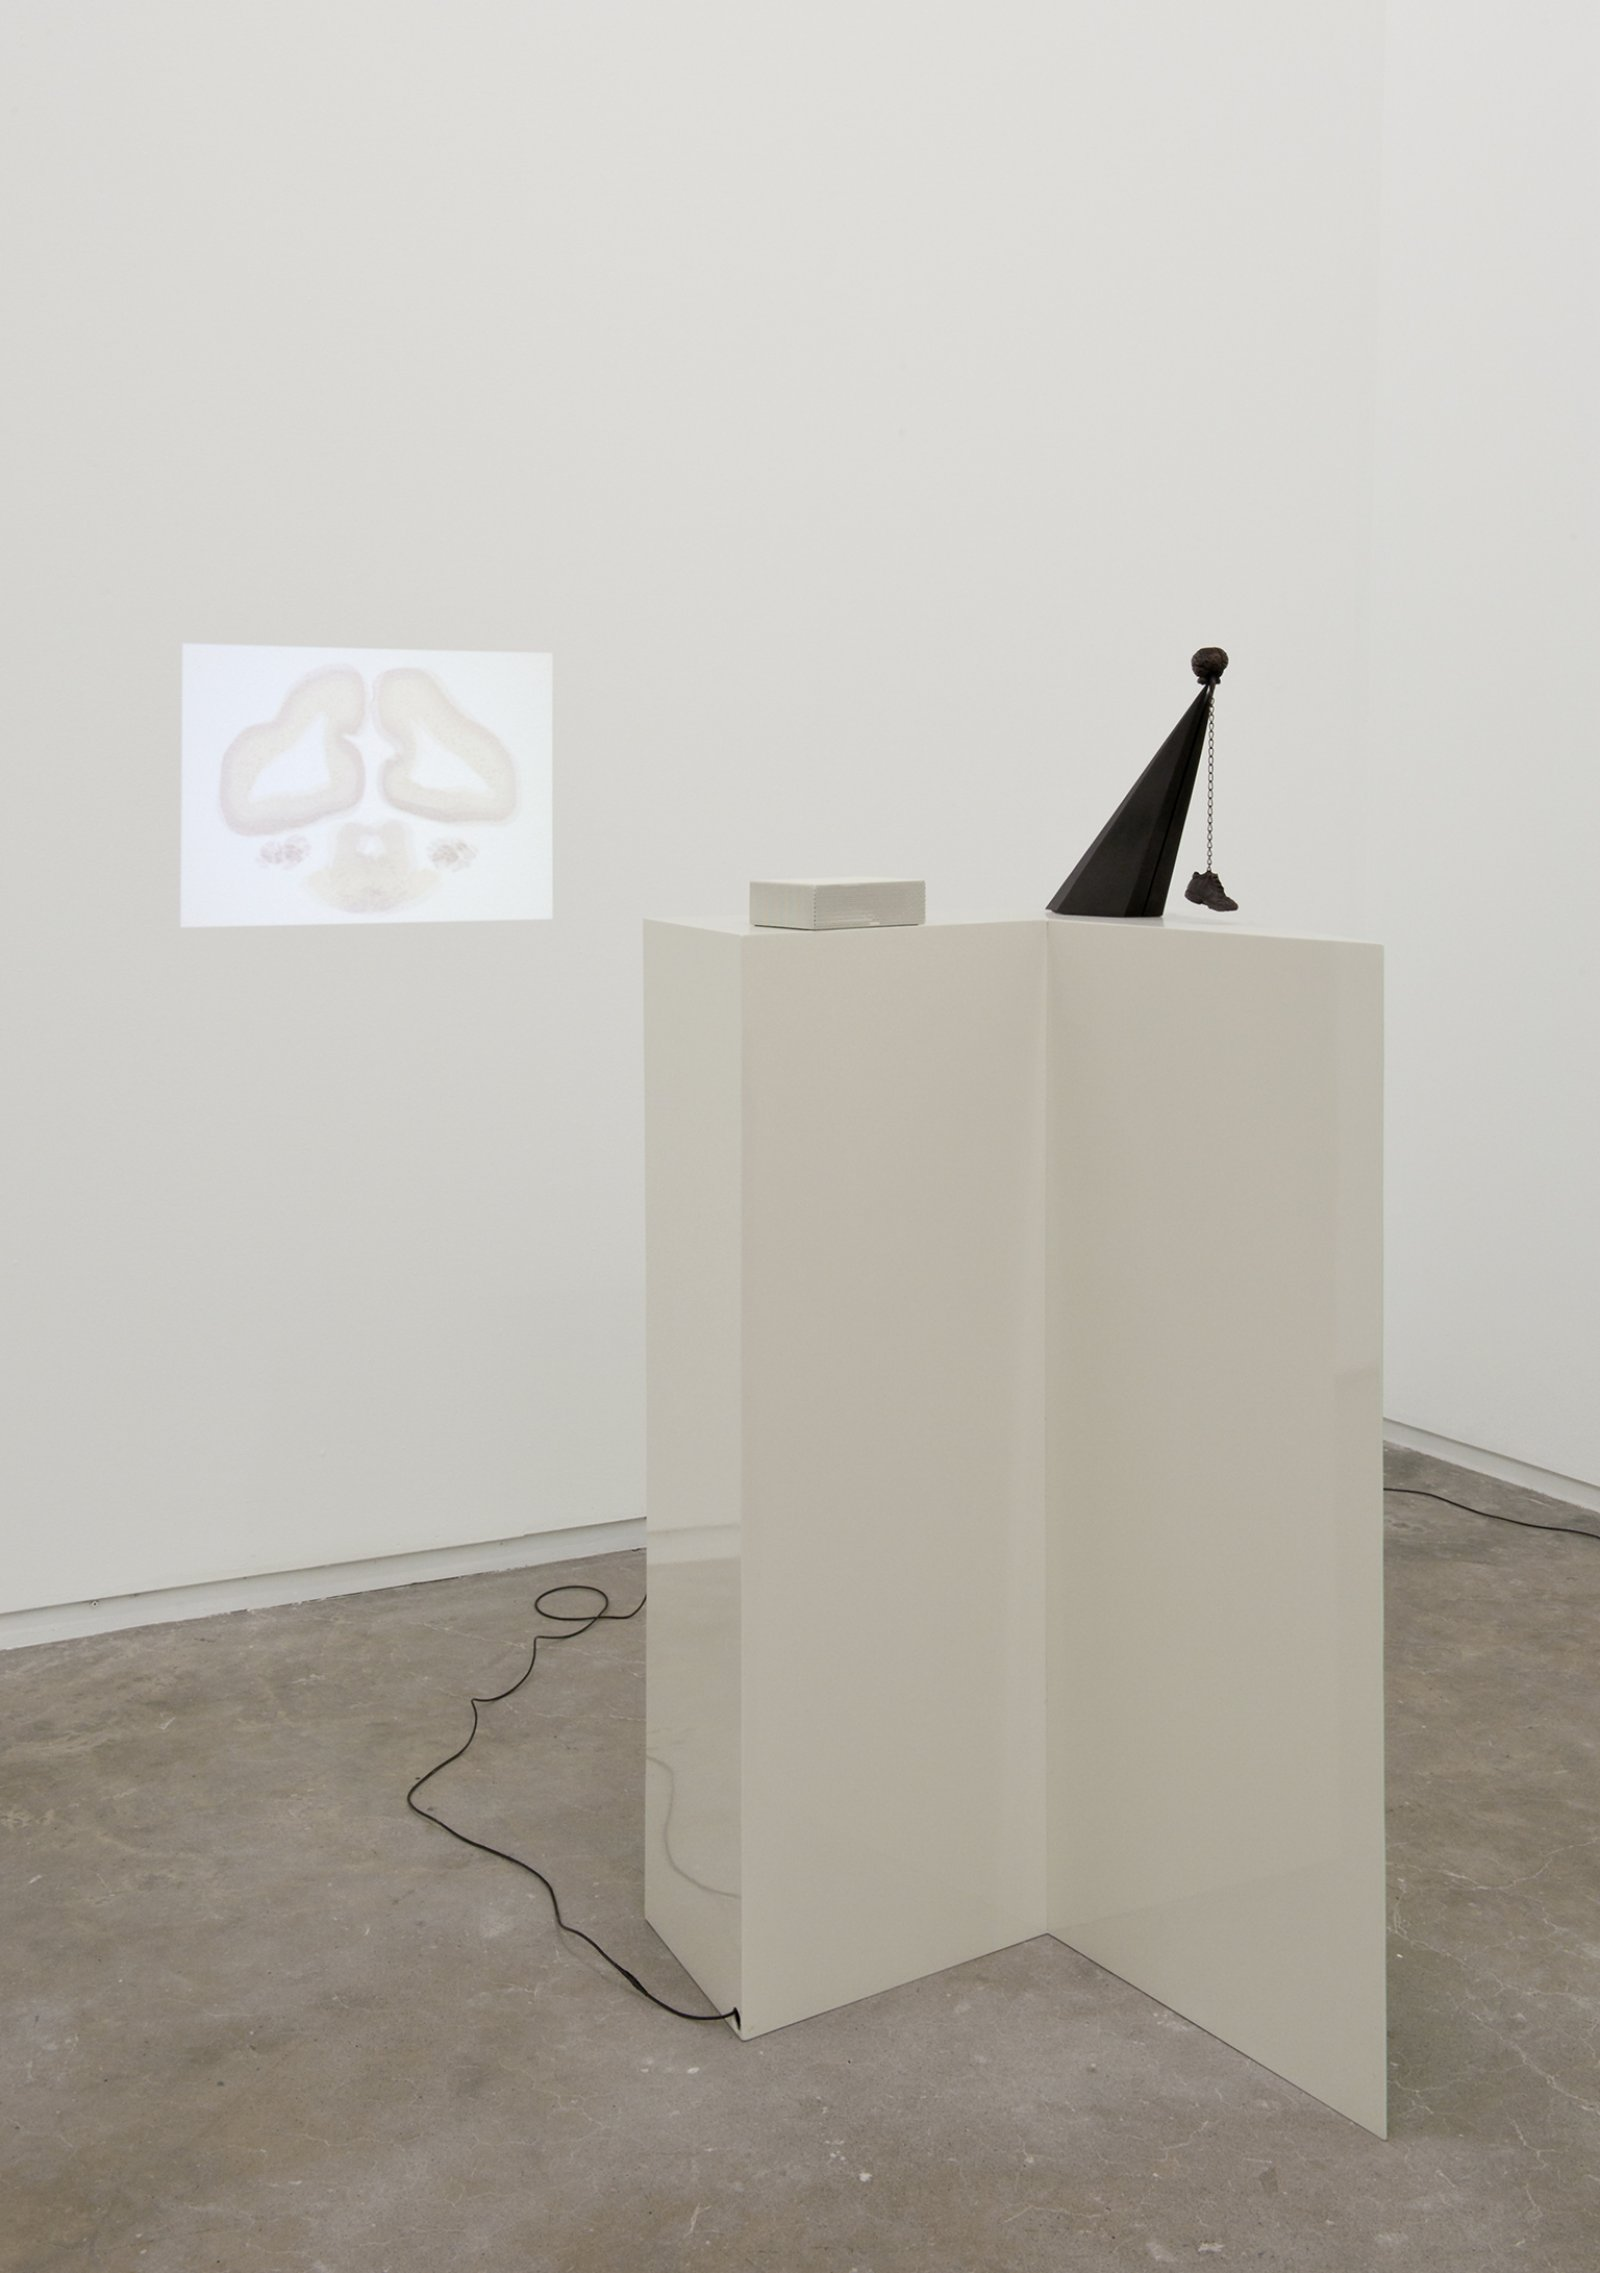 Judy Radul, Midtown Plaza-end of the autopsy, 2011, steel, bronze, LED video projector, string 54 x 27 x 25 in. (136 x 69 x 62 cm)   by Judy Radul